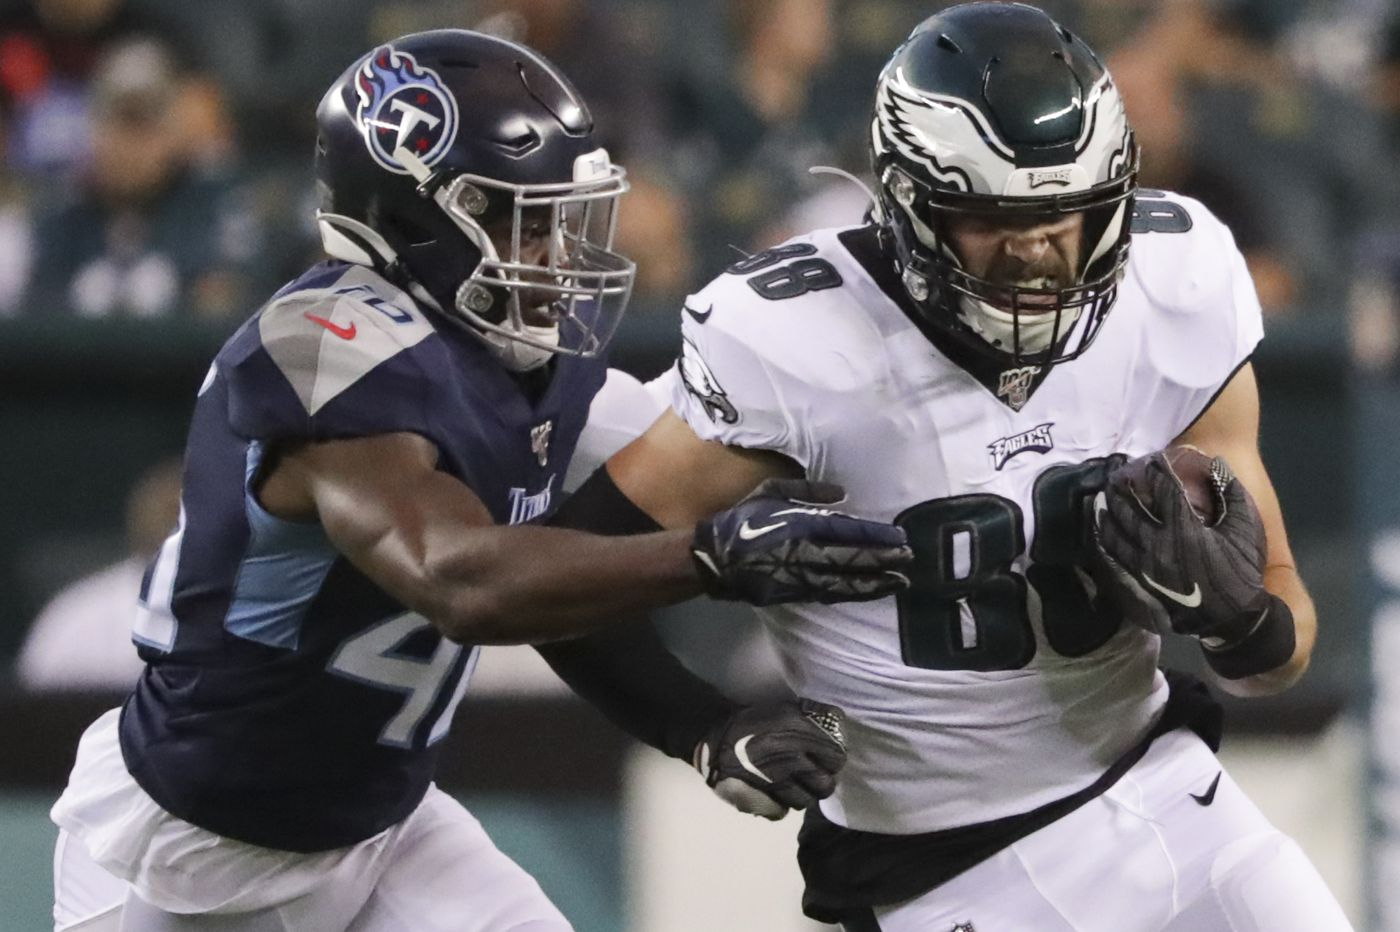 Eagles' tight end Dallas Goedert takes advantage of featured role against Titans